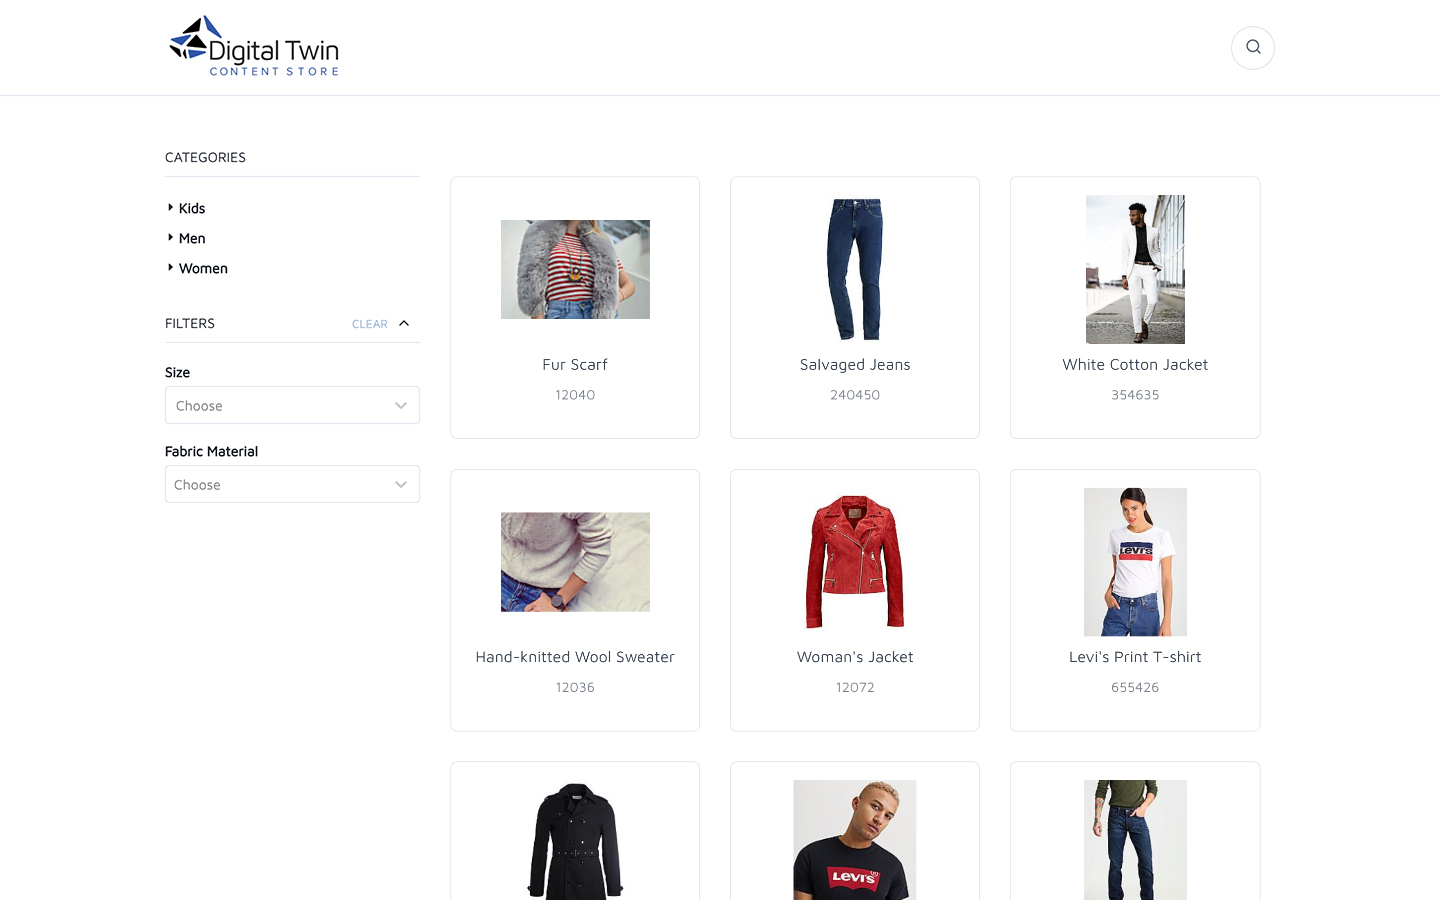 Homepage of the content store